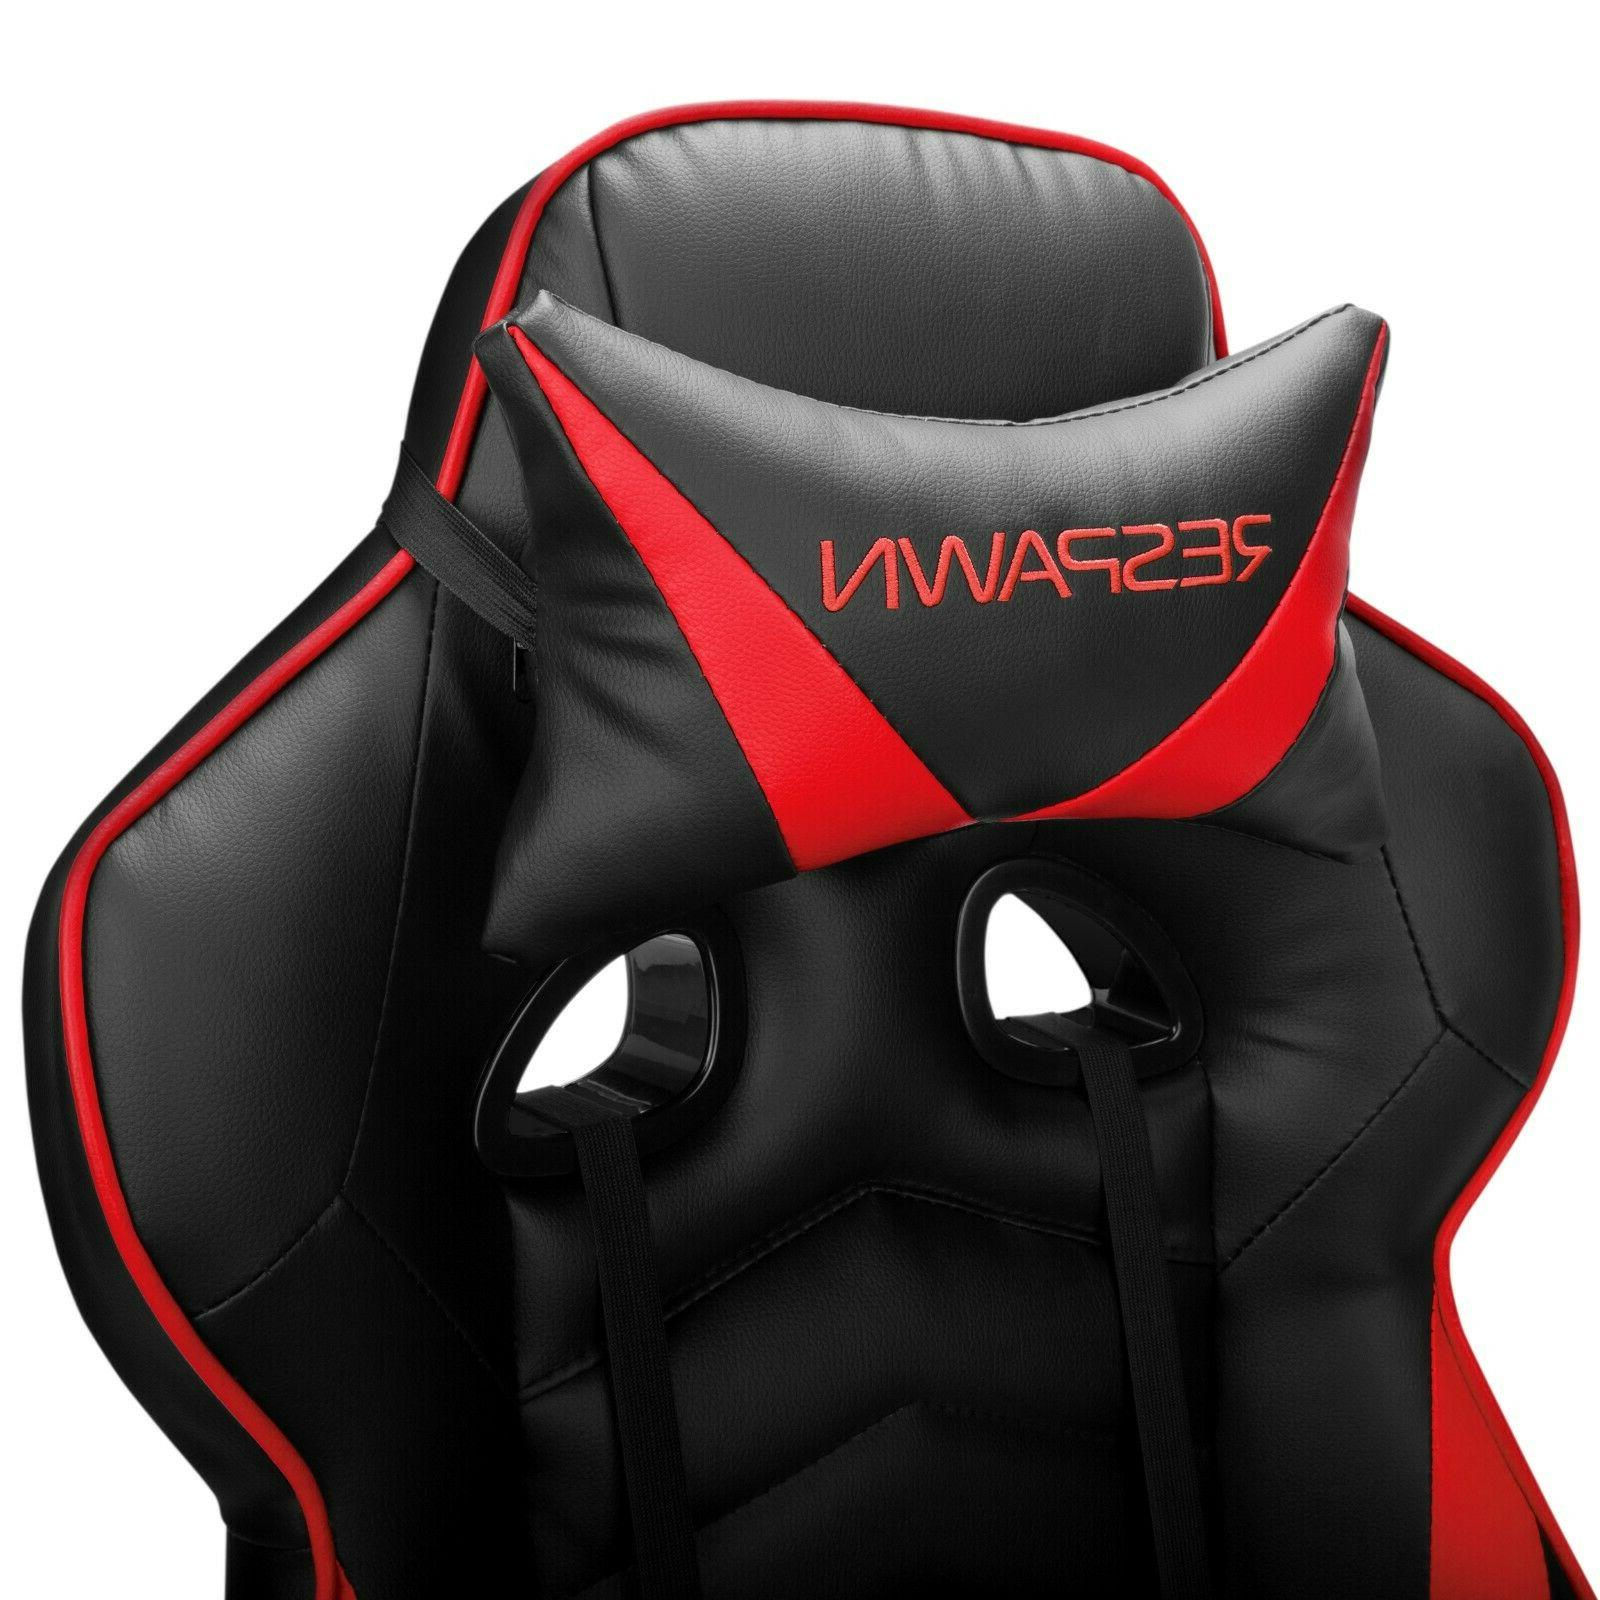 RESPAWN 110 Racing Gaming Chair, Chair W/Foot